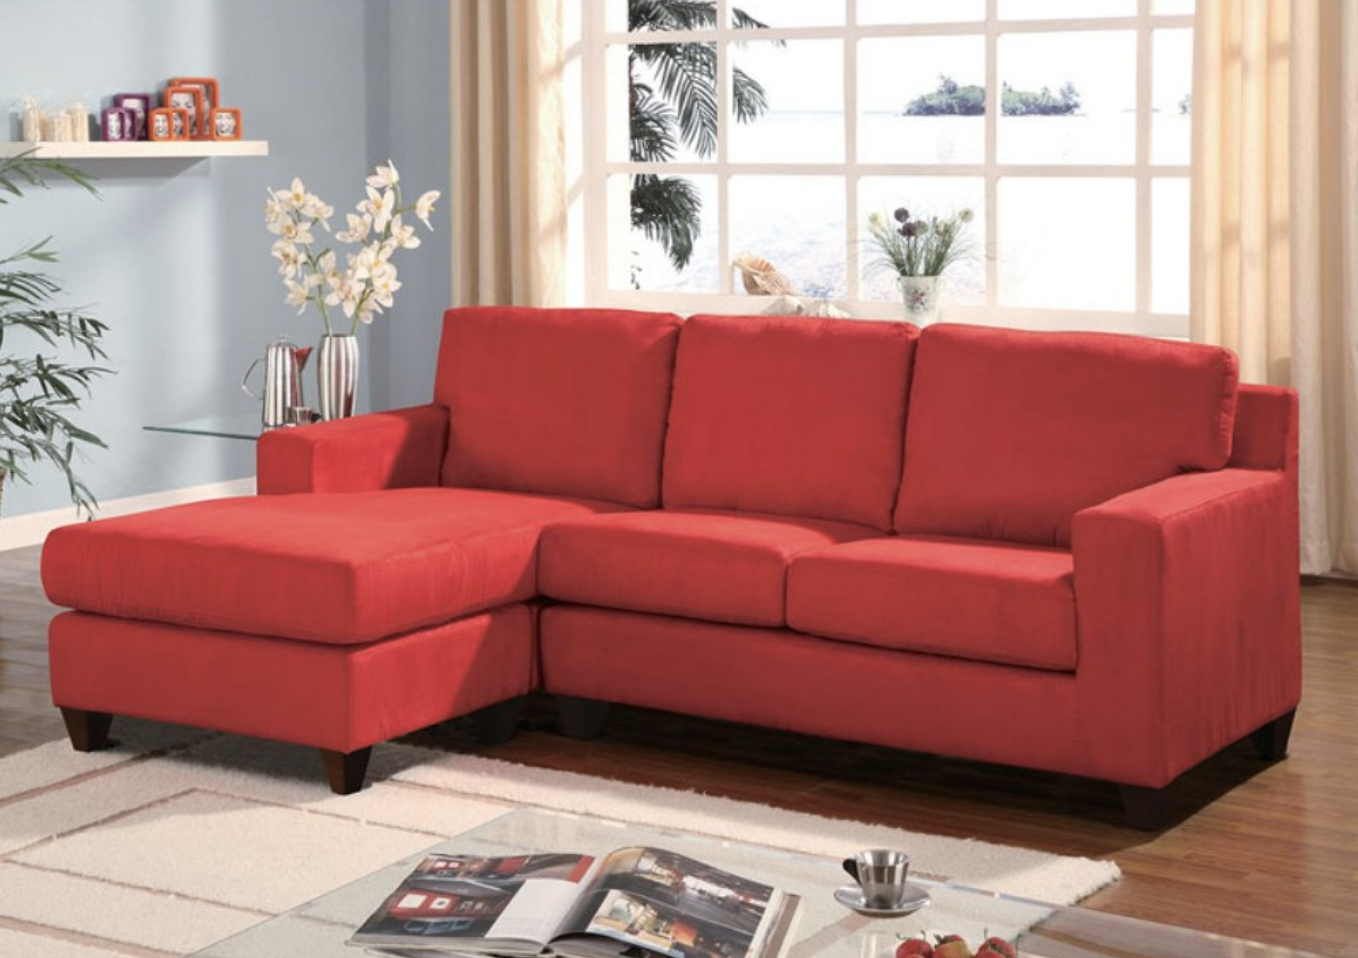 75 Modern Sectional Sofas For Small Spaces (2018) Inside Well Liked 100X80 Sectional Sofas (View 5 of 15)